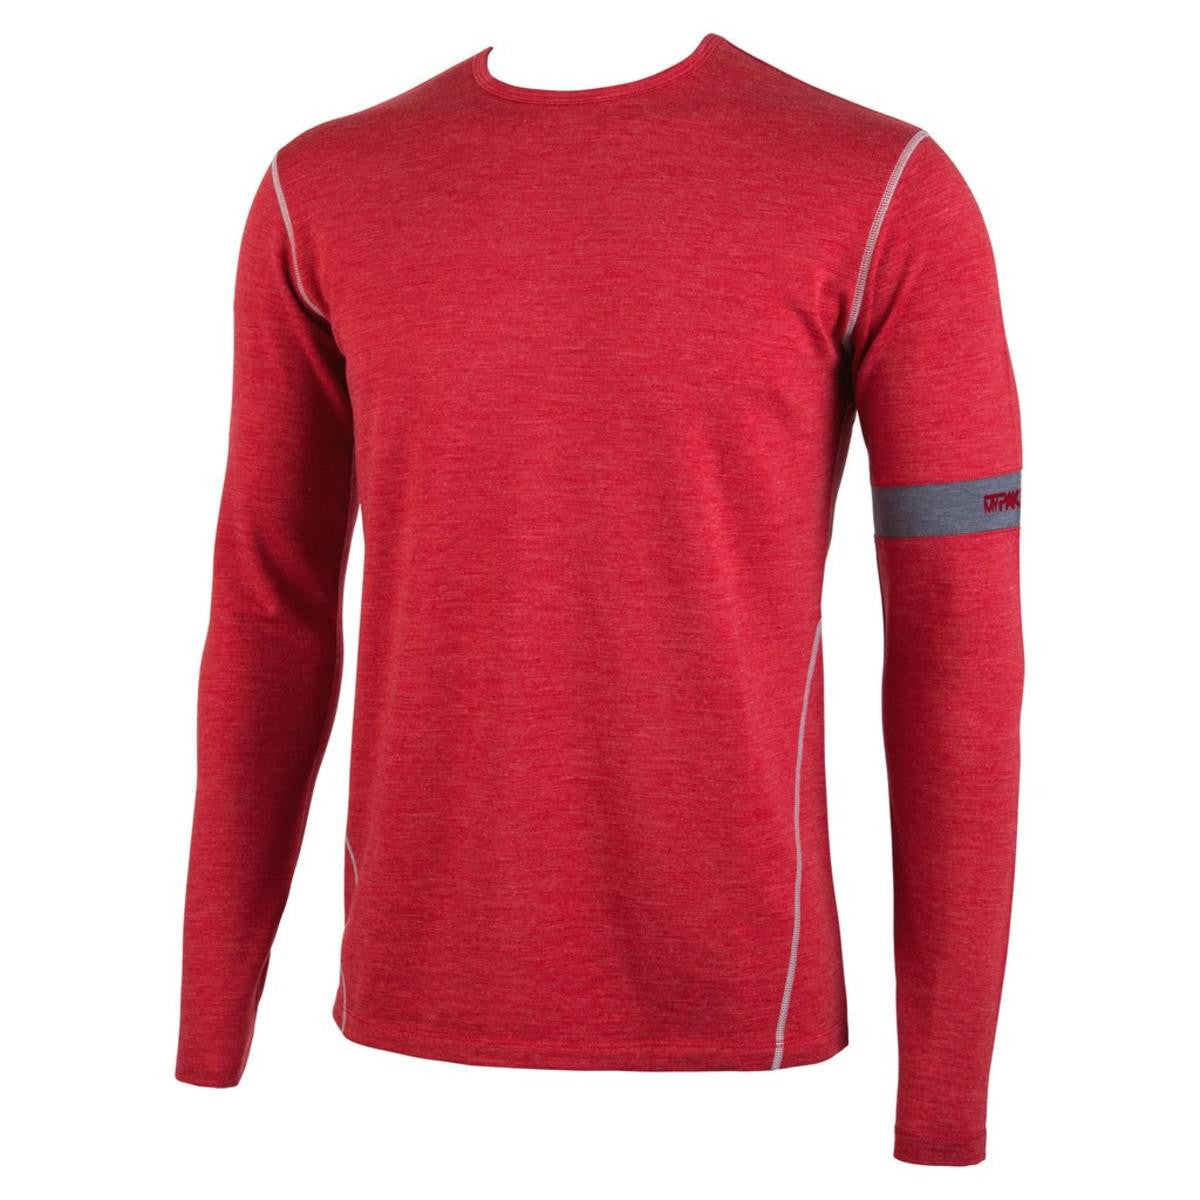 MyPakage Merino Wool First Layer Top Men's